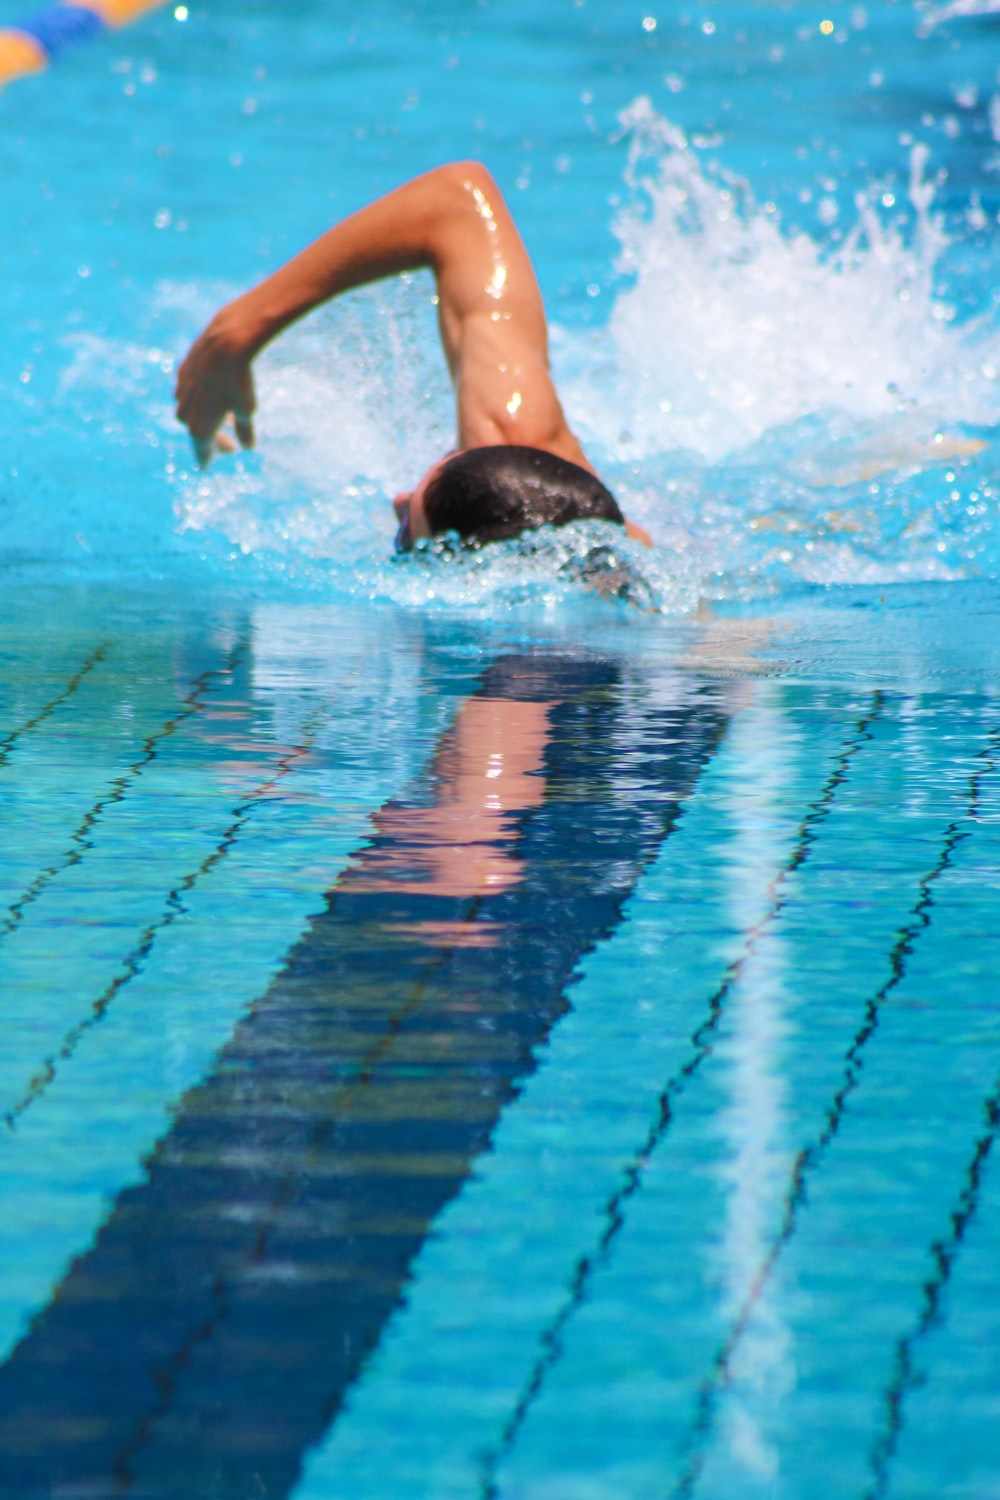 person in water during daytime